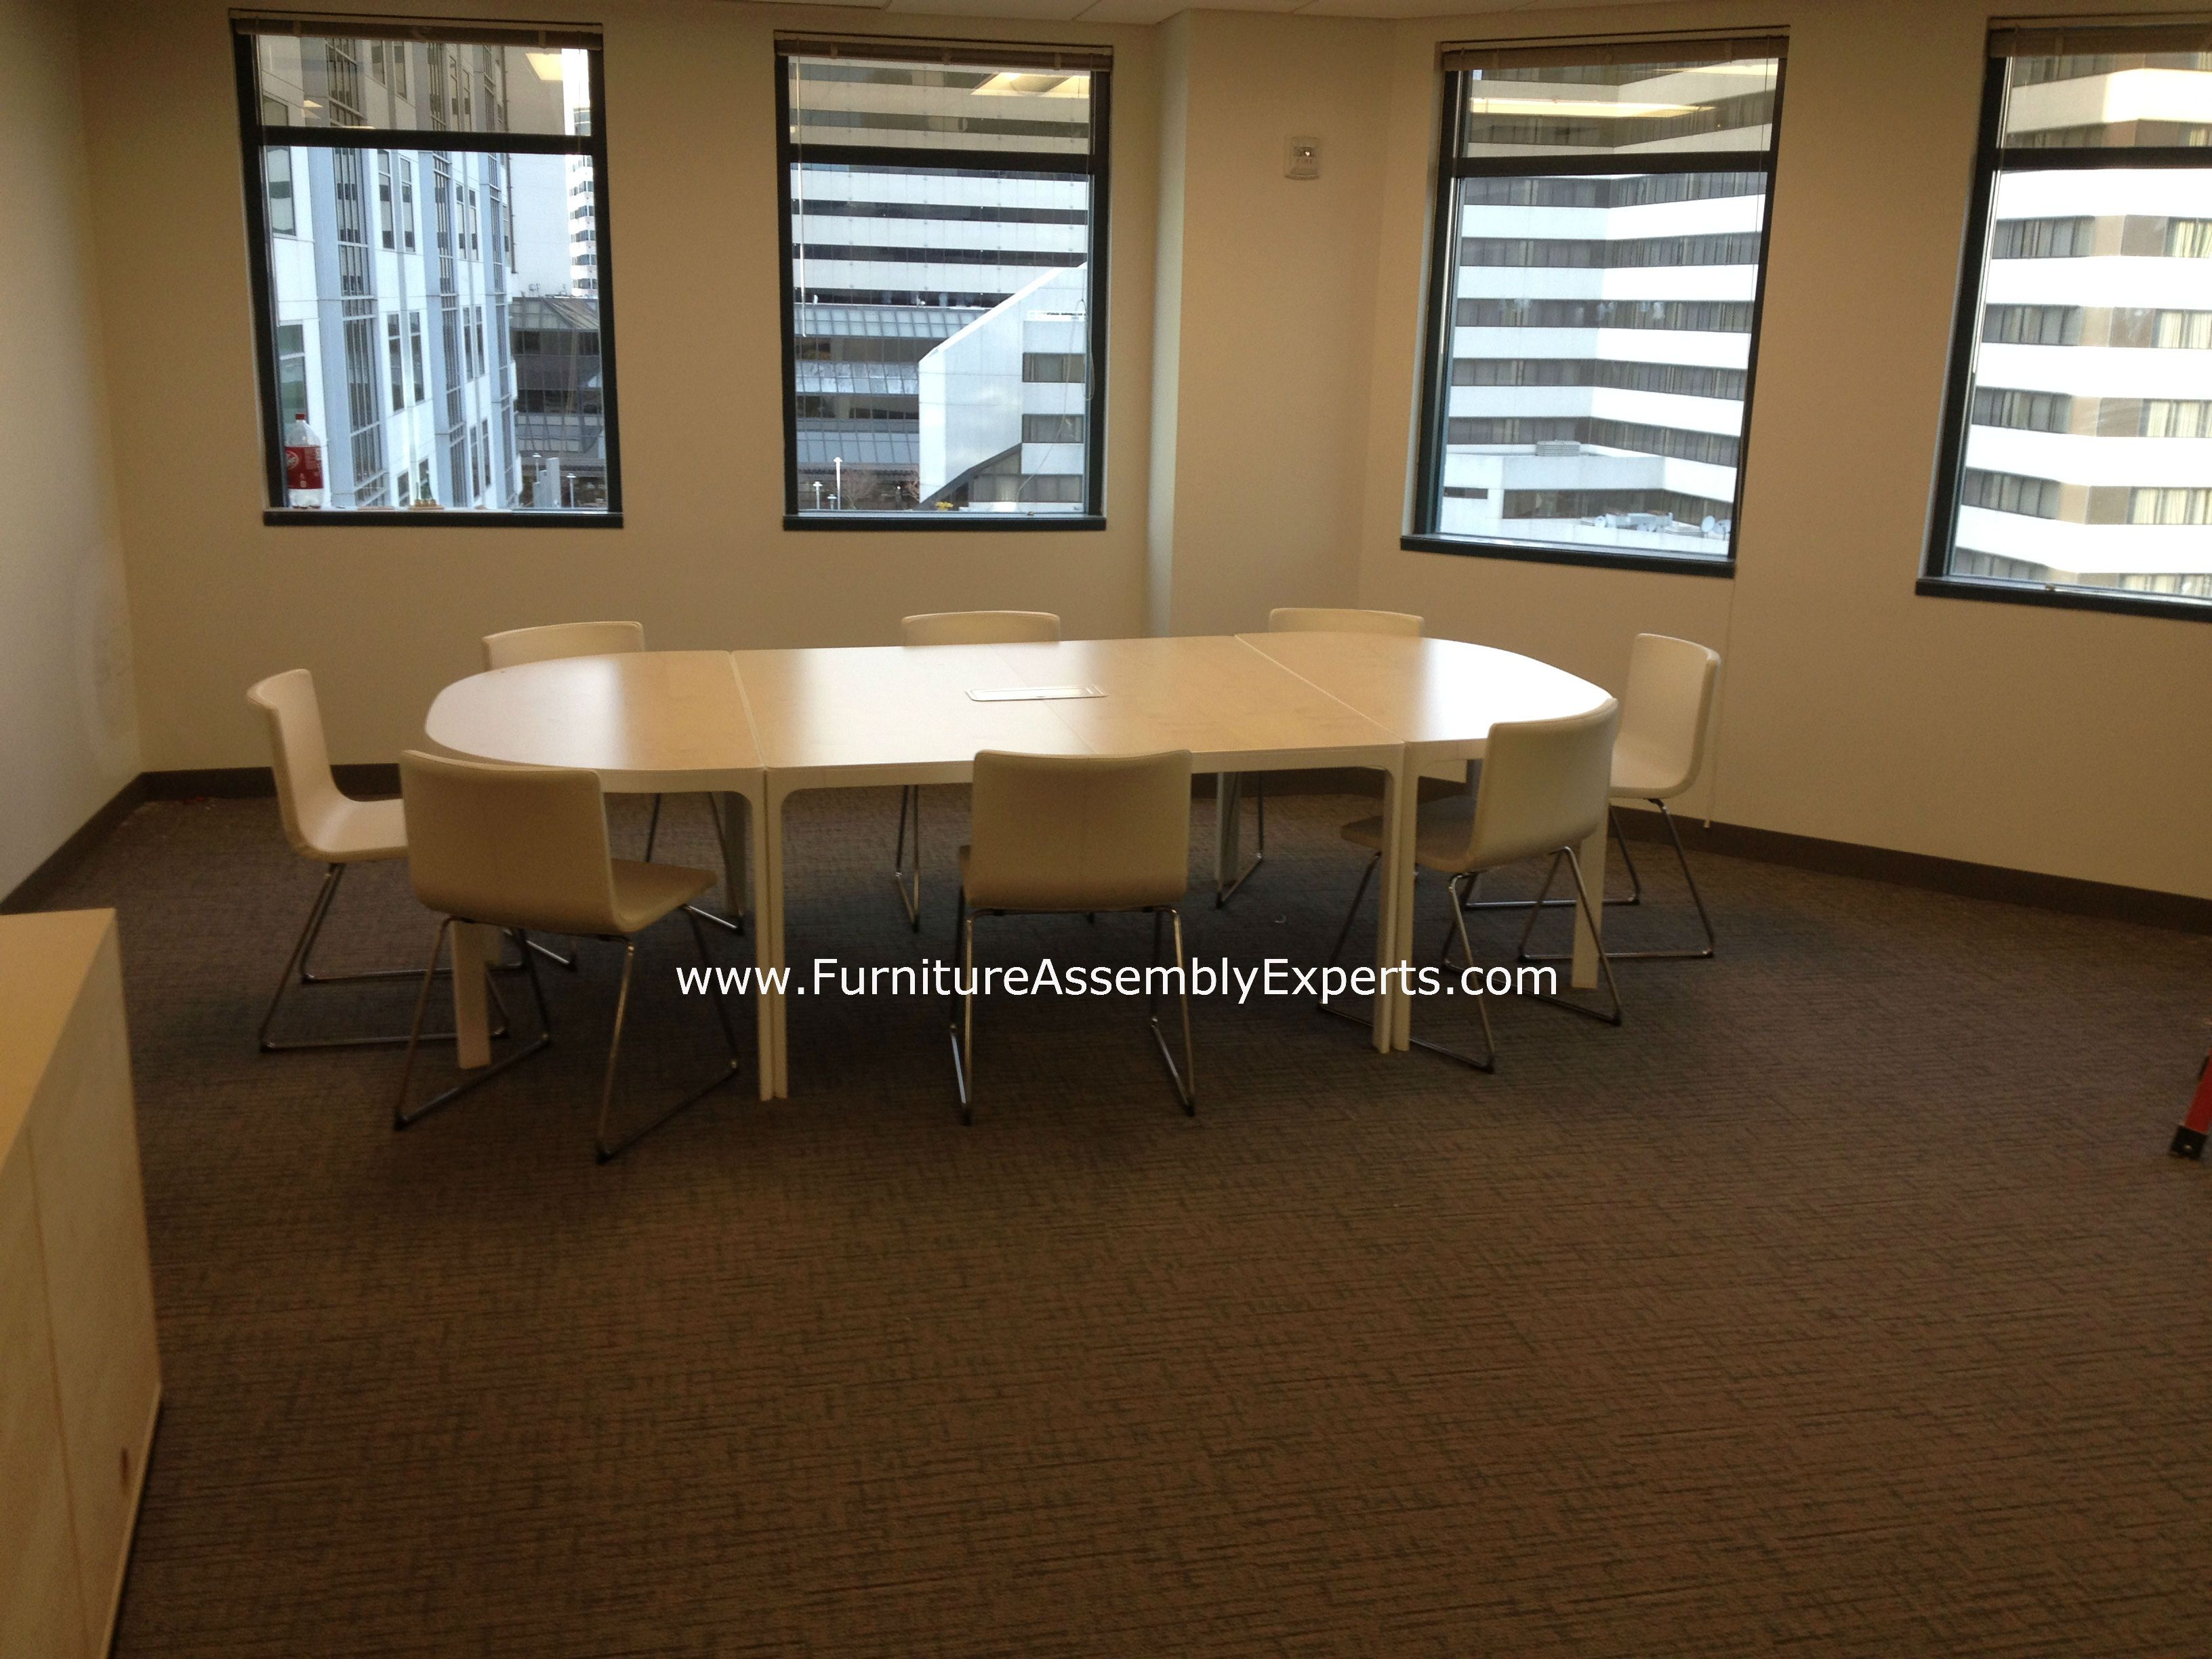 Furniture Assembly Experts LLC Provides Same Day Assembly Service For Ikea  Furniture In Washington DC Metro Area. Call Or Email Us For Fast Service Or  Call